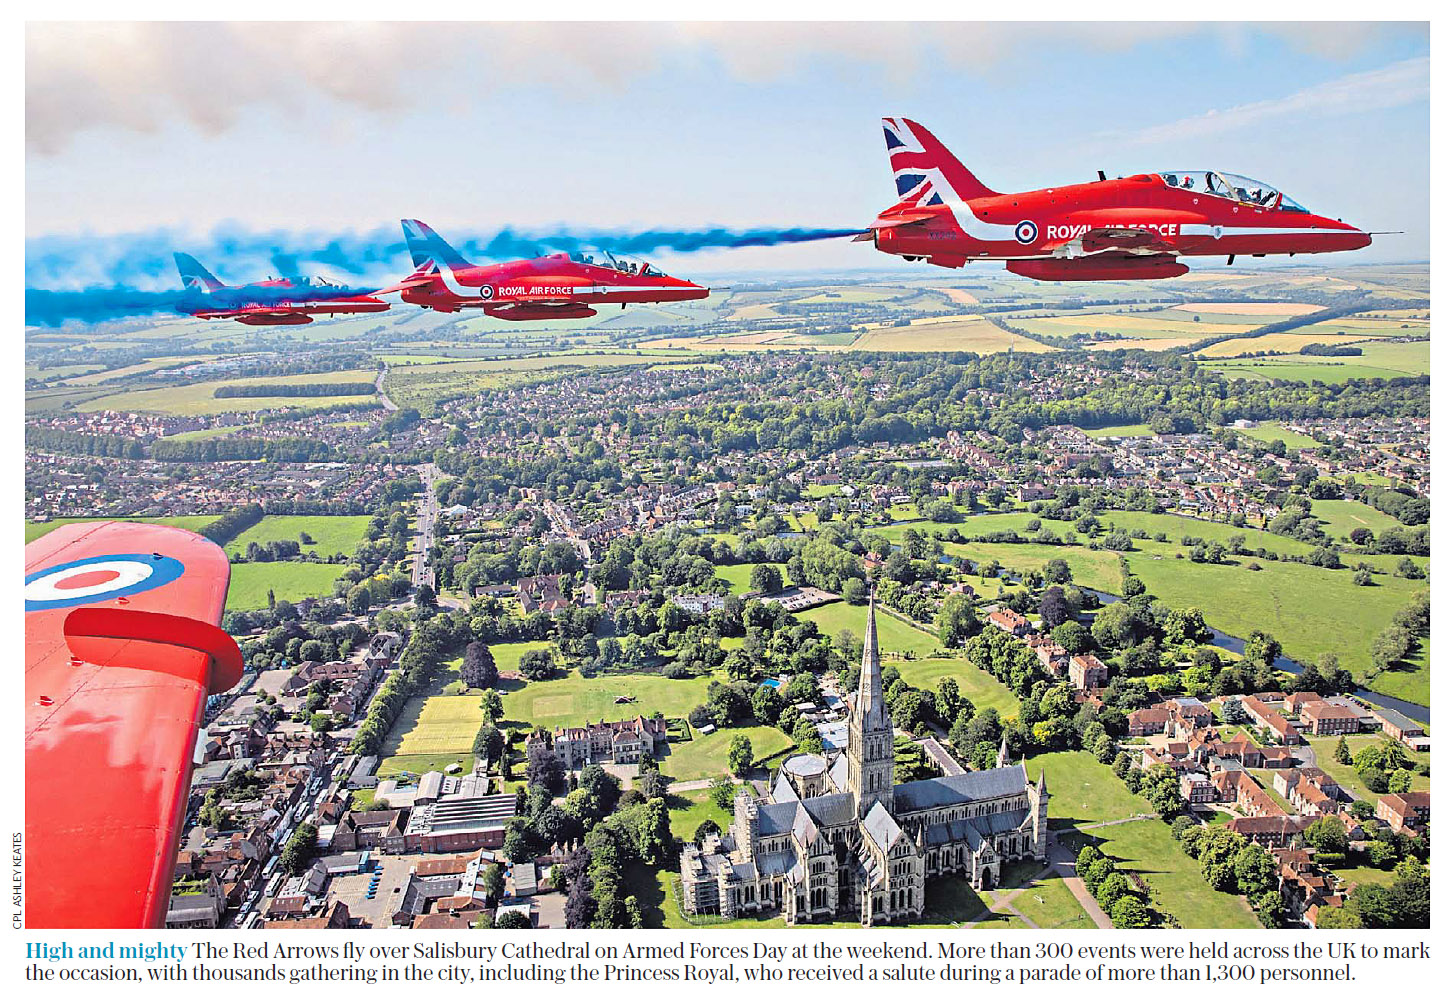 The Red Arrows fly over Salisbury Catherdal on Armed Forces Day.jpg